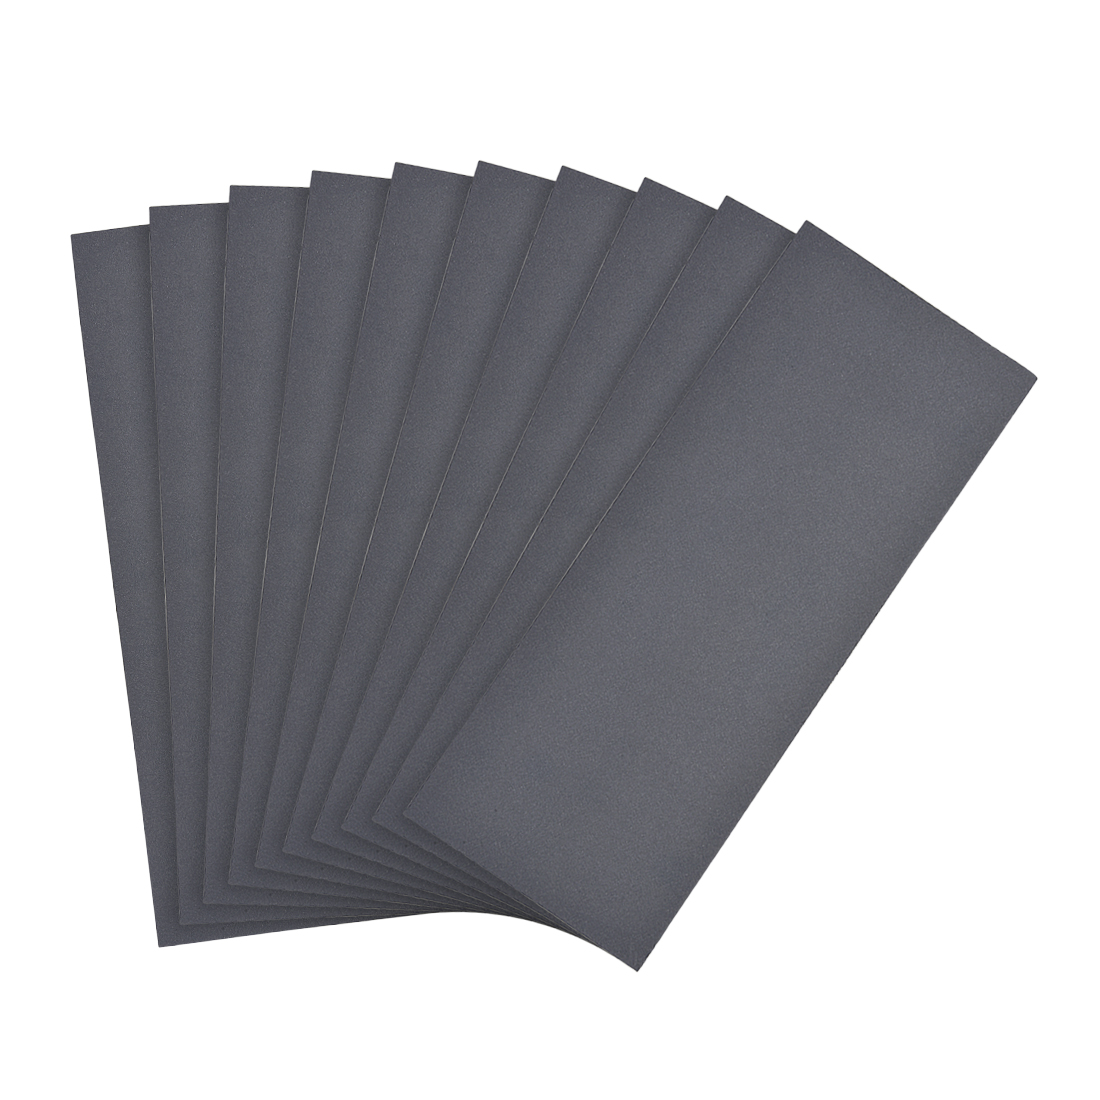 Waterproof Sandpaper, Wet Dry Sand Paper Grit of 800, 9 x 3.7inch 10pcs